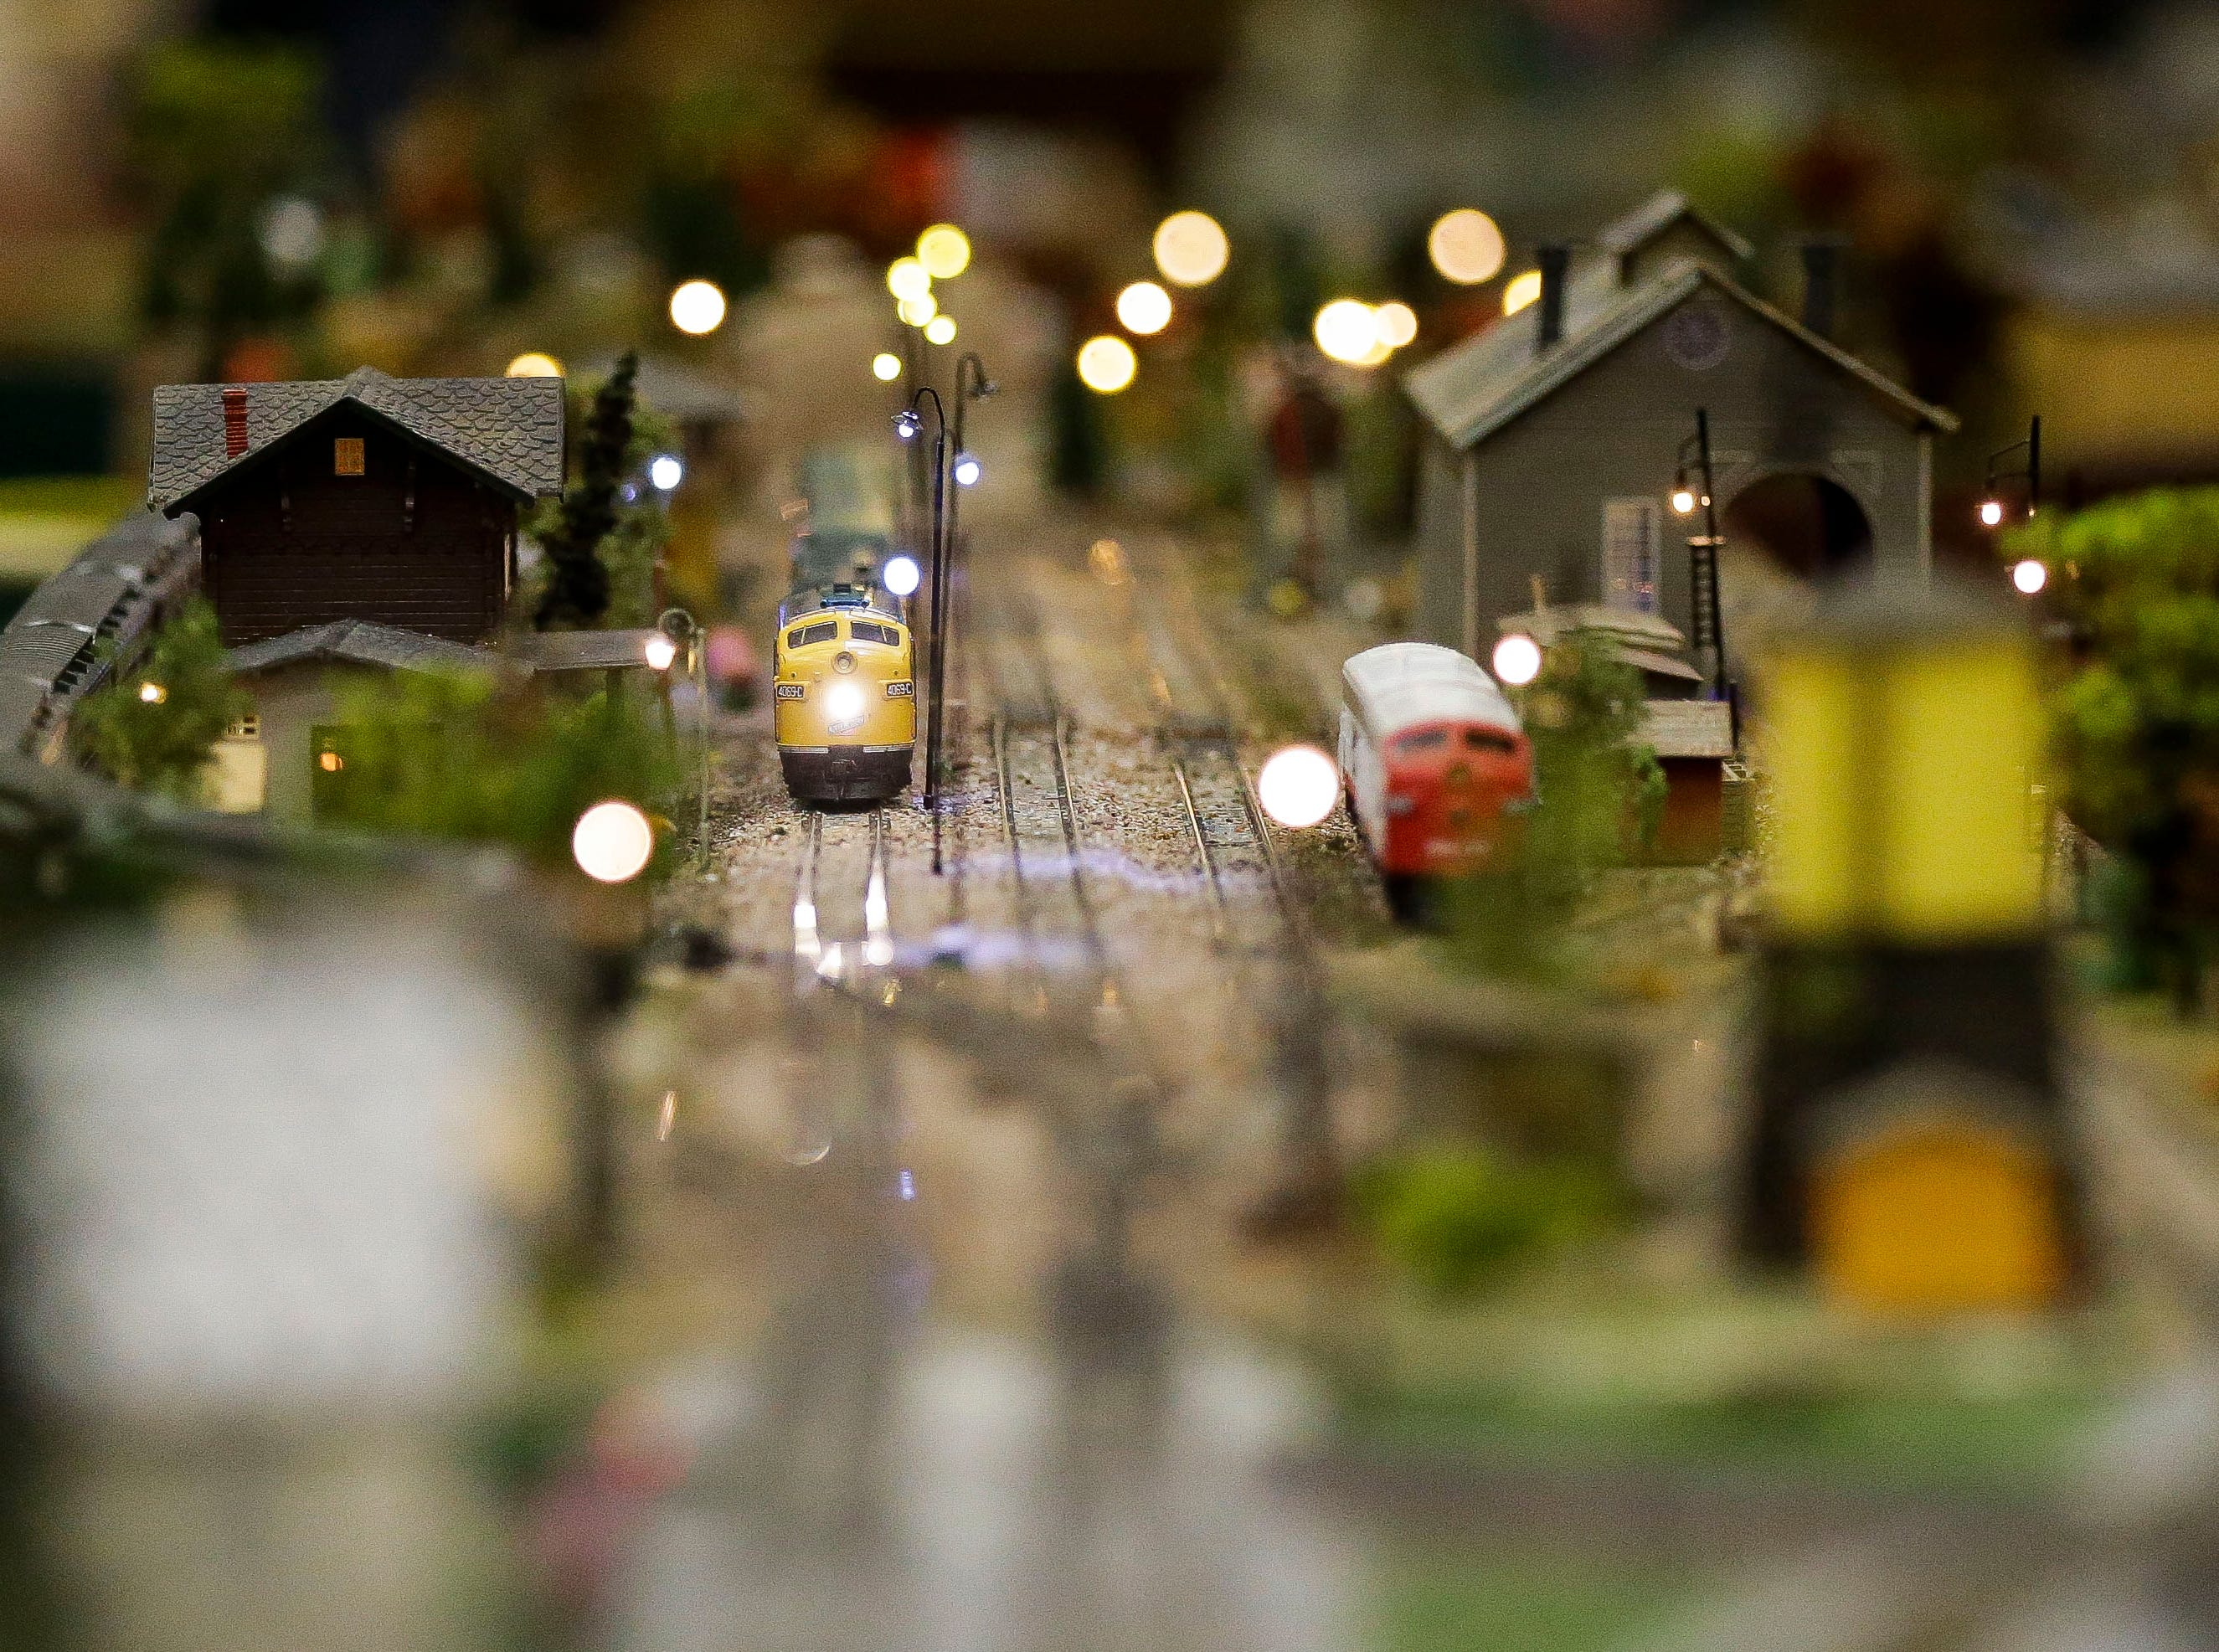 A model train runs along a diorama on Sunday, February 3, 2019, during the Arctic Run Model Railroad Show at the Holiday Inn Convention Center in Stevens Point, Wis.Tork Mason/USA TODAY NETWORK-Wisconsin